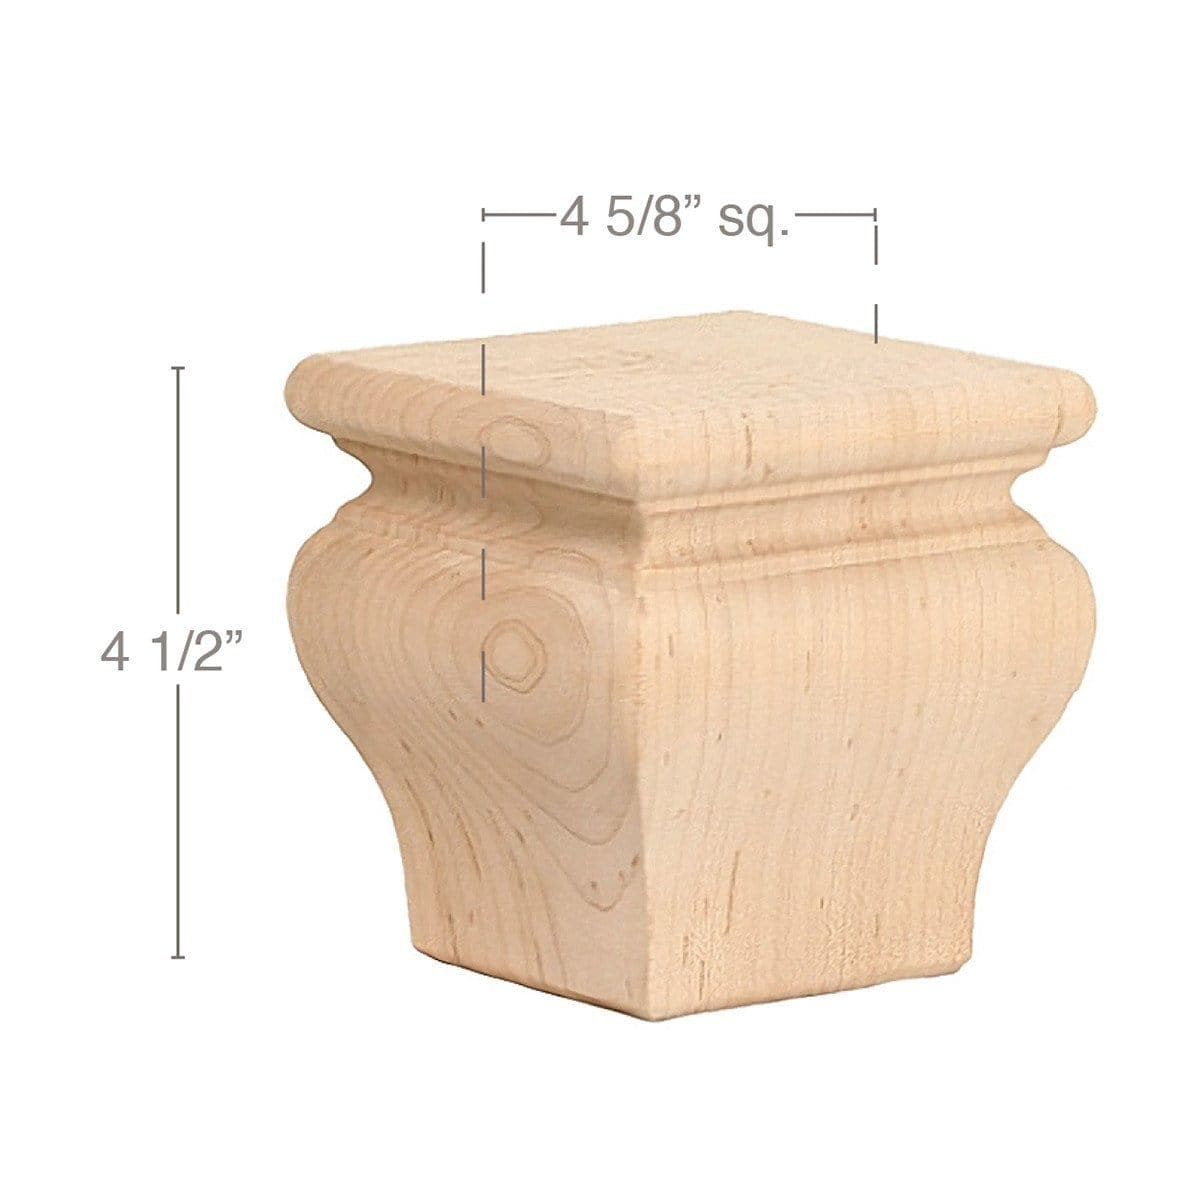 "Classic Square Bun Foot, 4 5/8""sq. x 4 1/2""h"